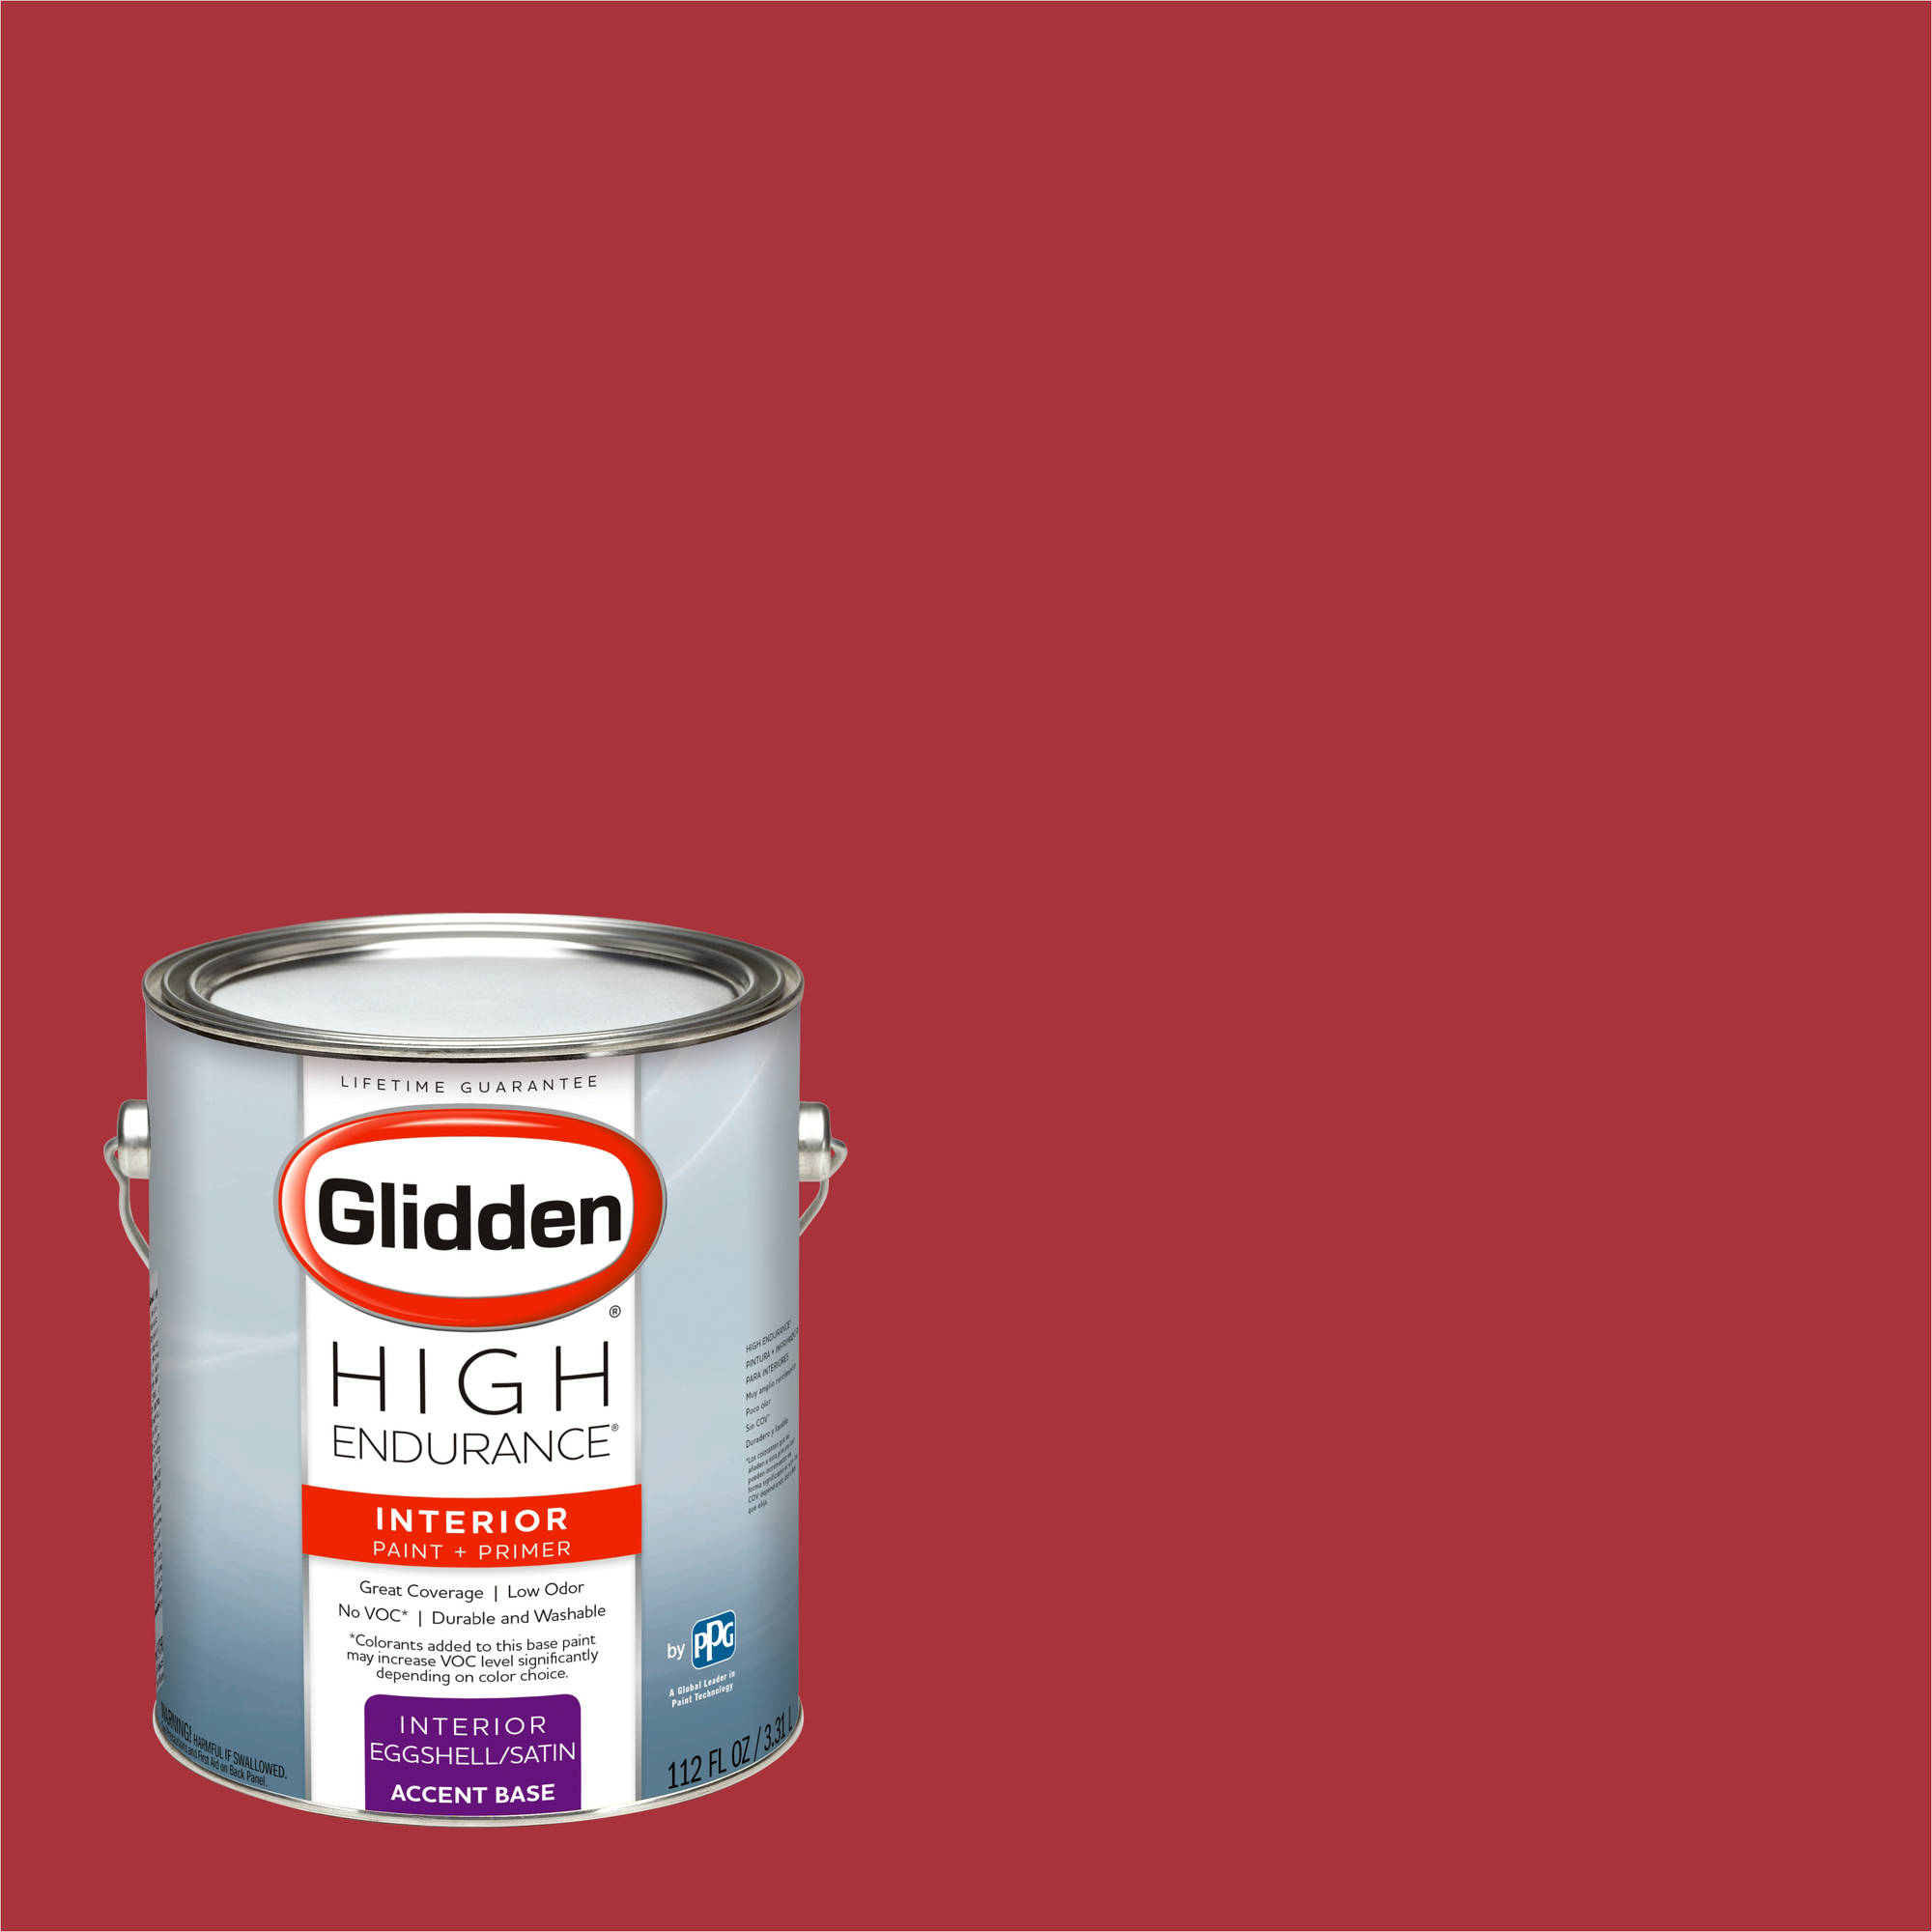 Glidden High Endurance, Interior Paint and Primer, Rapture Red, # 07YR 10/489